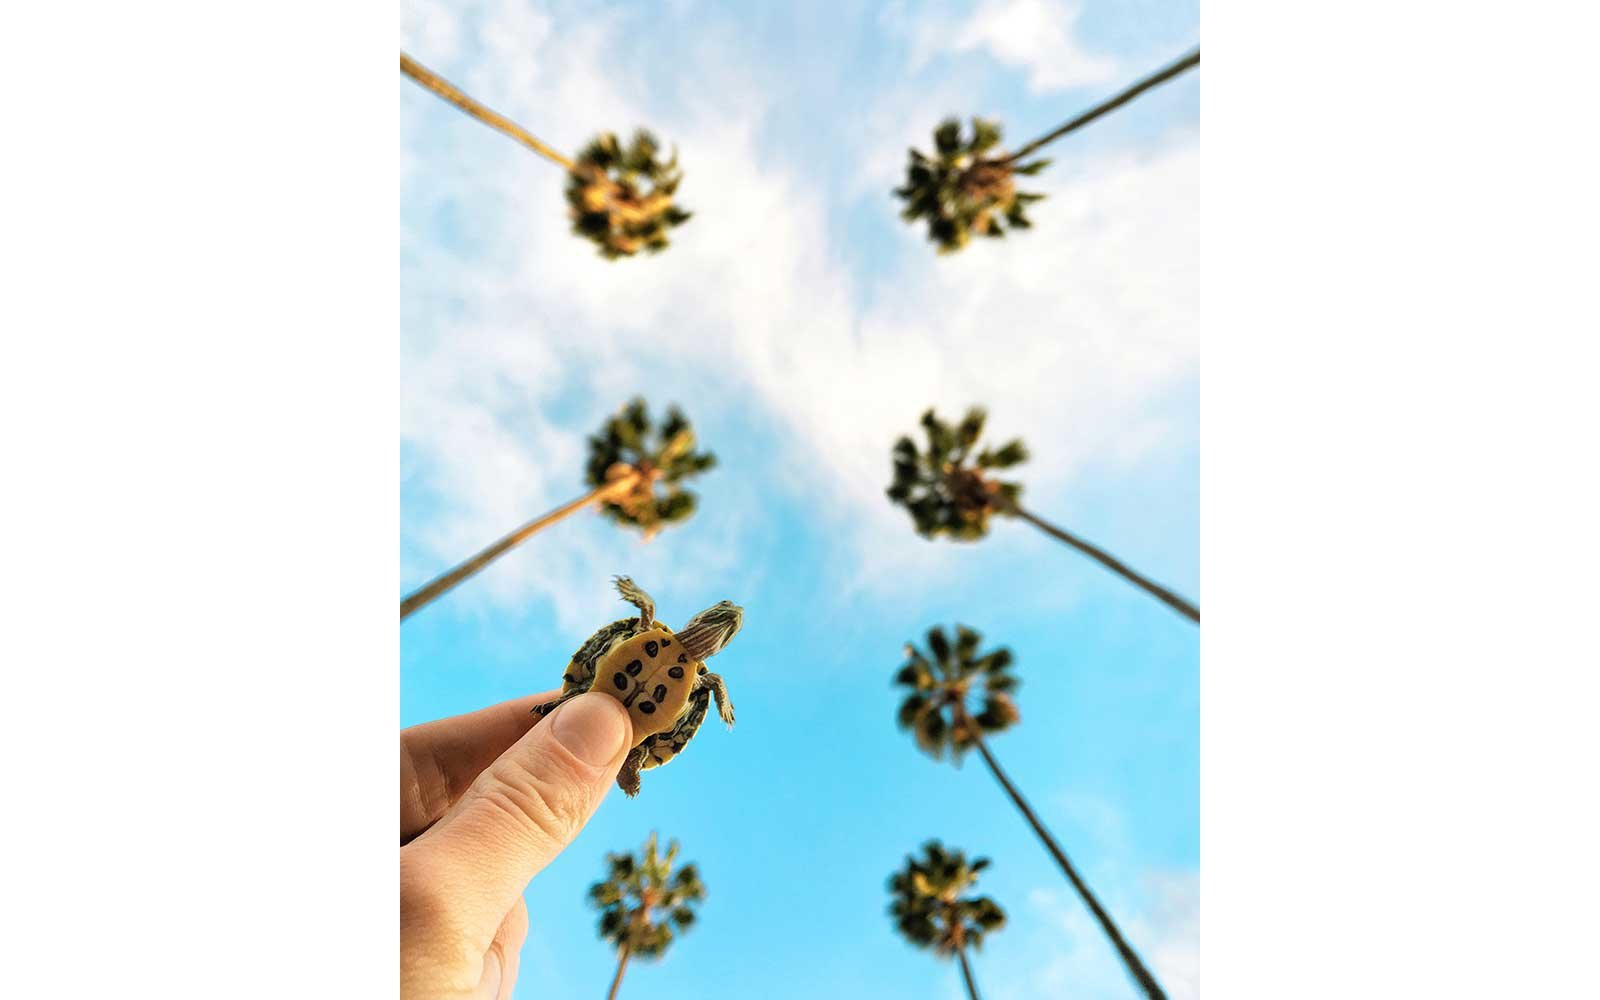 Turtle and palm trees in Los Angeles